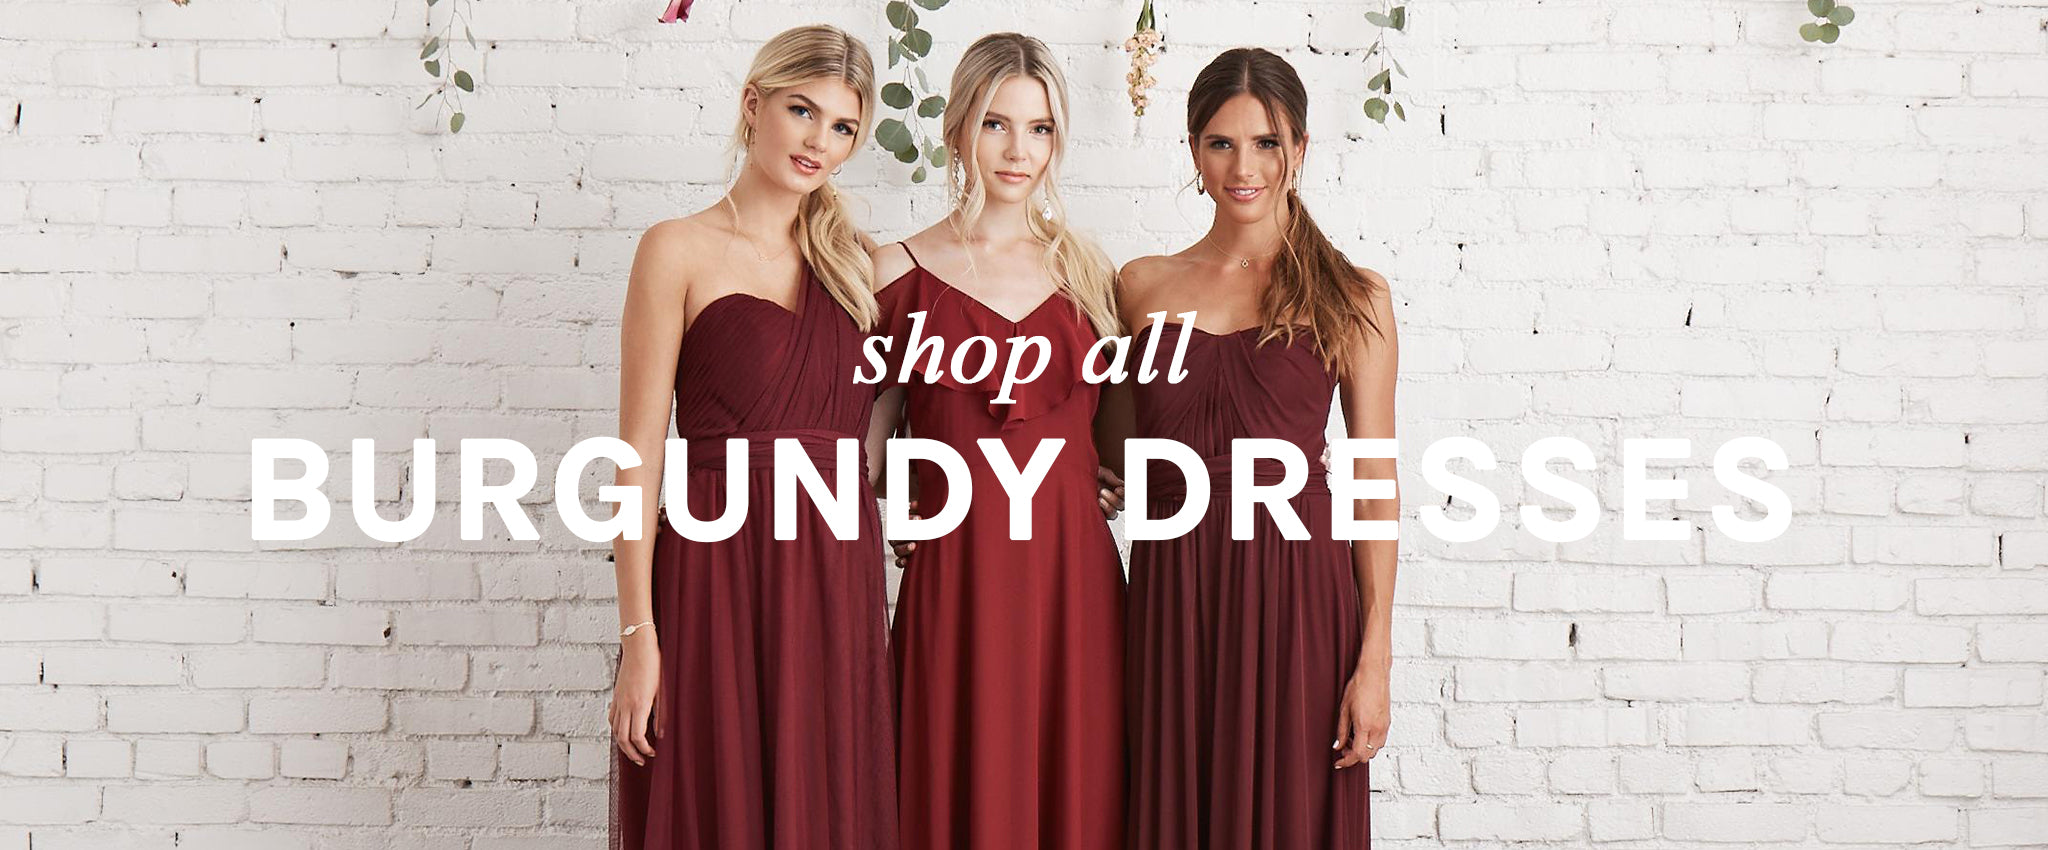 Birdy Grey Burgundy Red Wine Bridesmaid Dresses Under $100